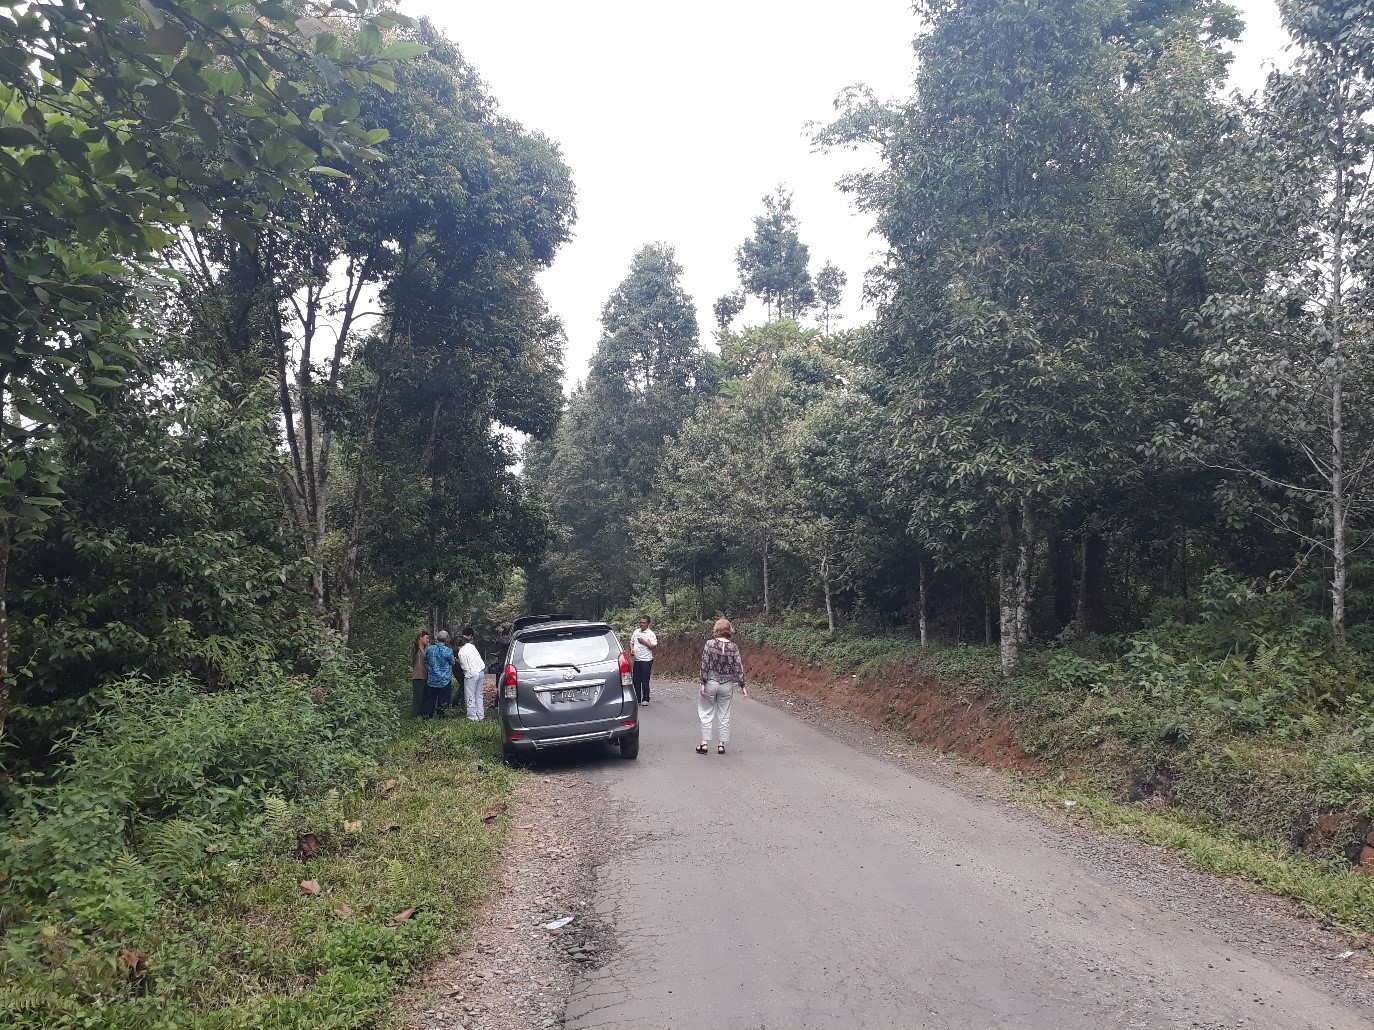 Our party stopped to view the wildlife corridor we are proposing to model using Condatis, between Mount Halimun and Mount Salak, within the National Park.